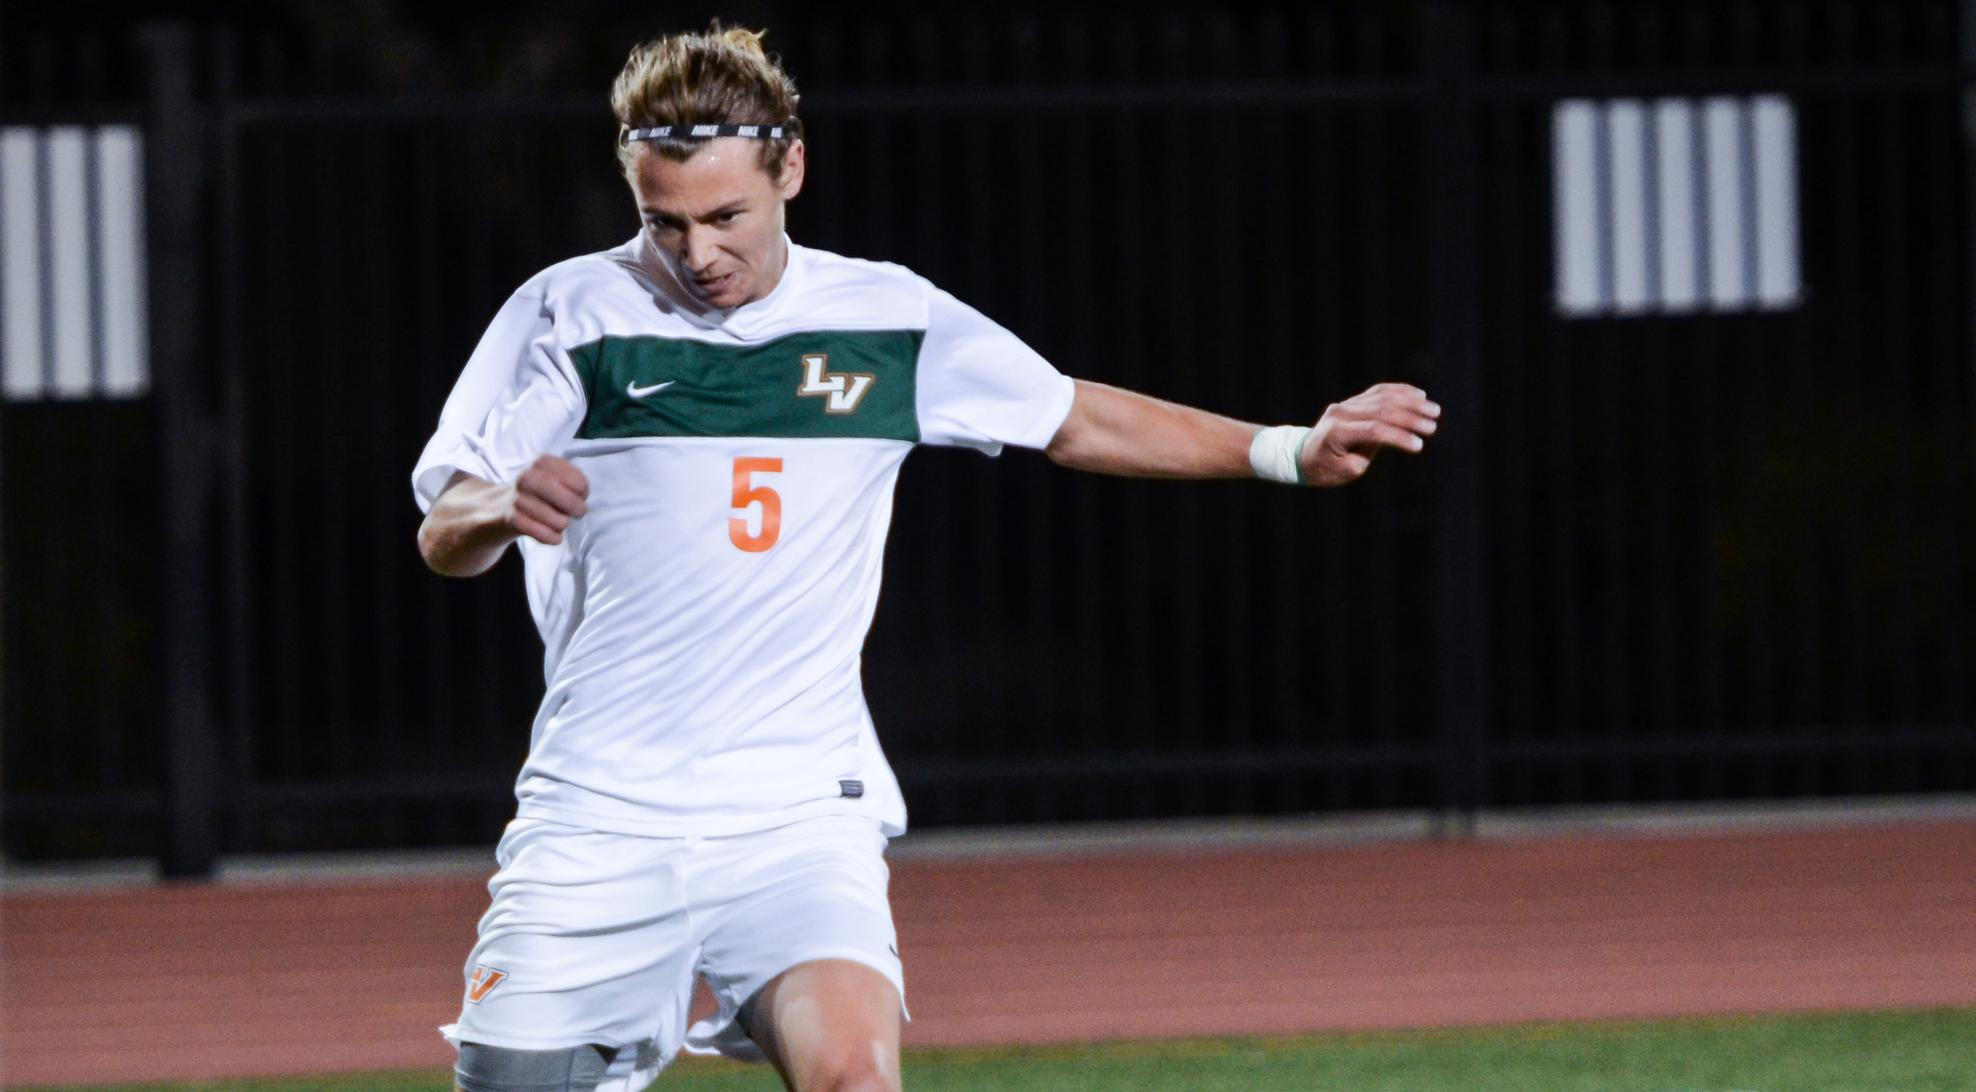 Men's Soccer picked fourth in SCIAC preseason poll